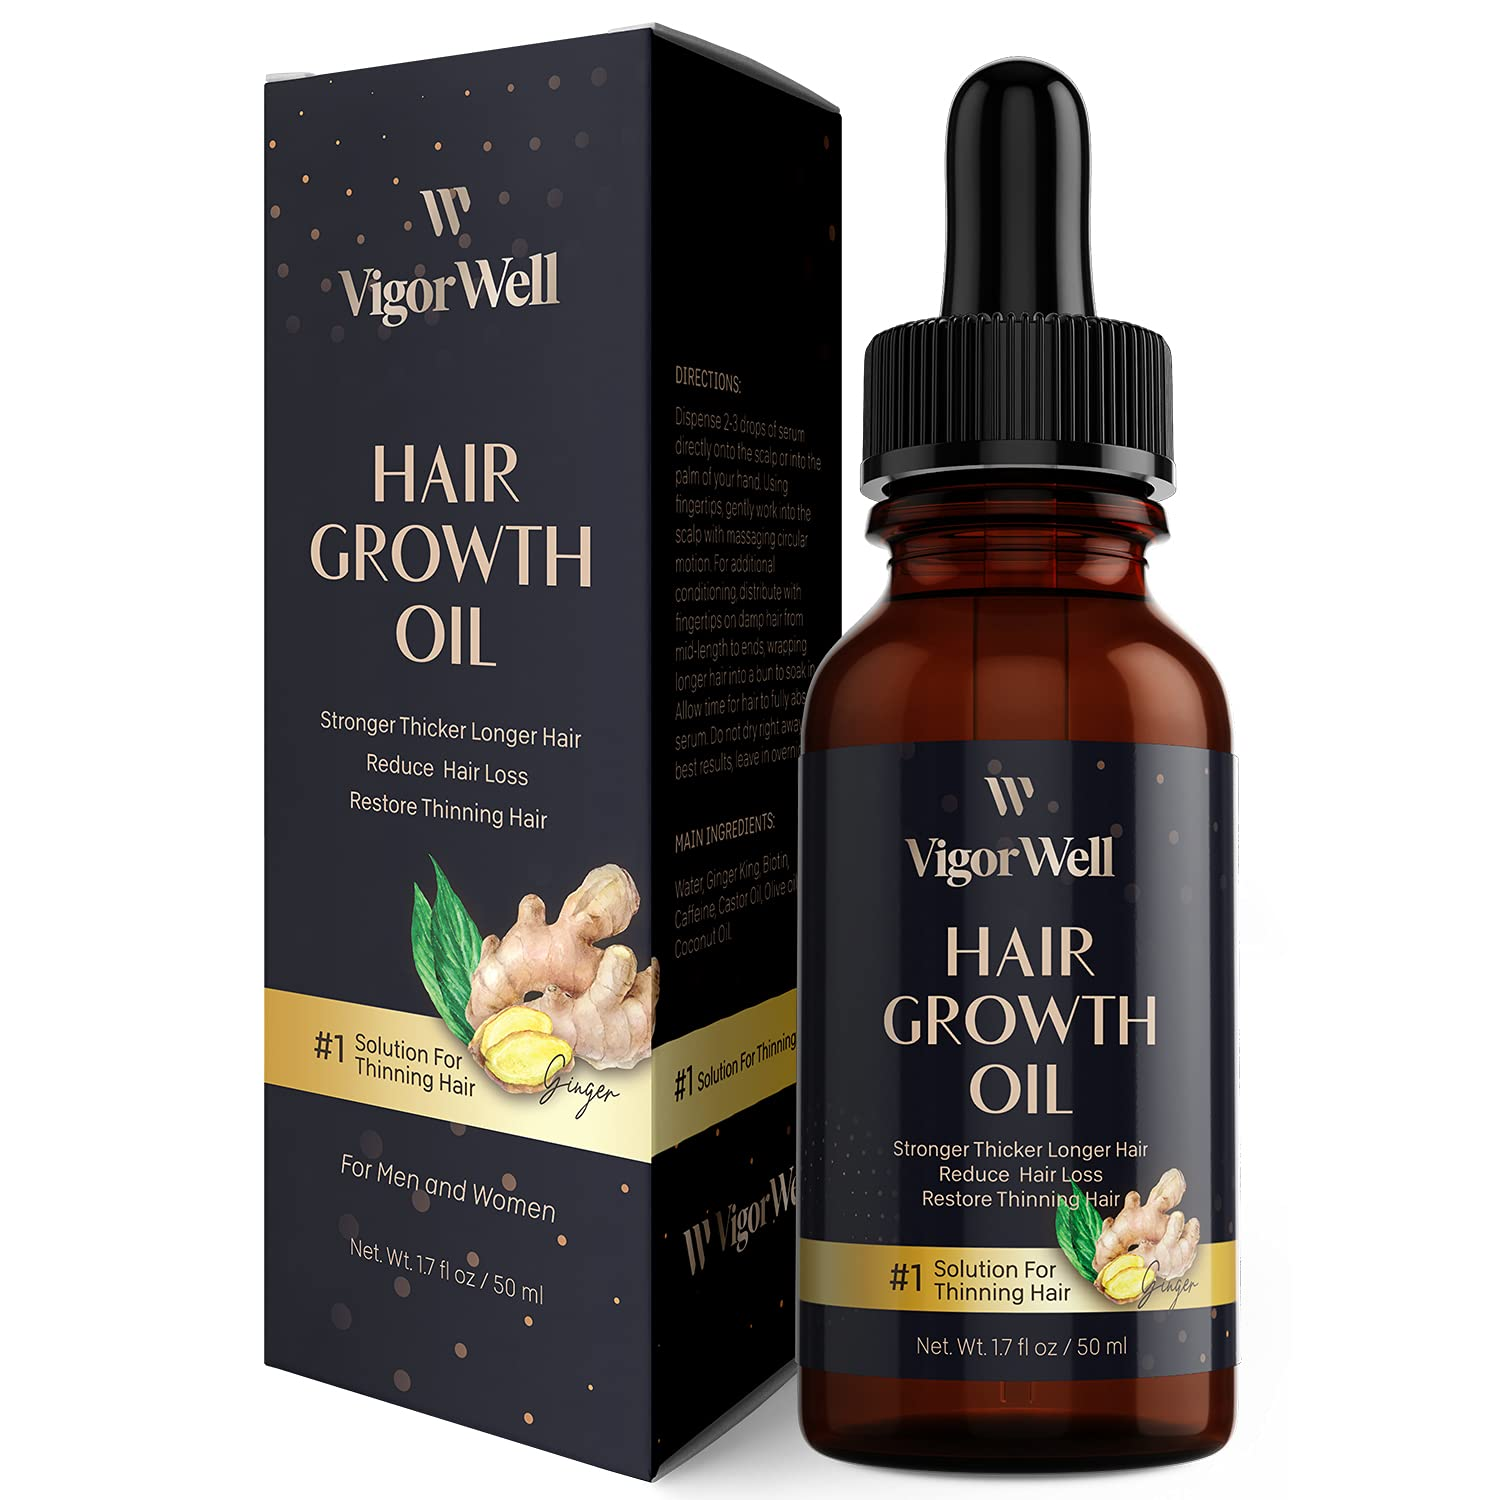 Hair Growth Oil Natural with Caffeine Castor and - Biotin Ranking integrated 1st place Kansas City Mall